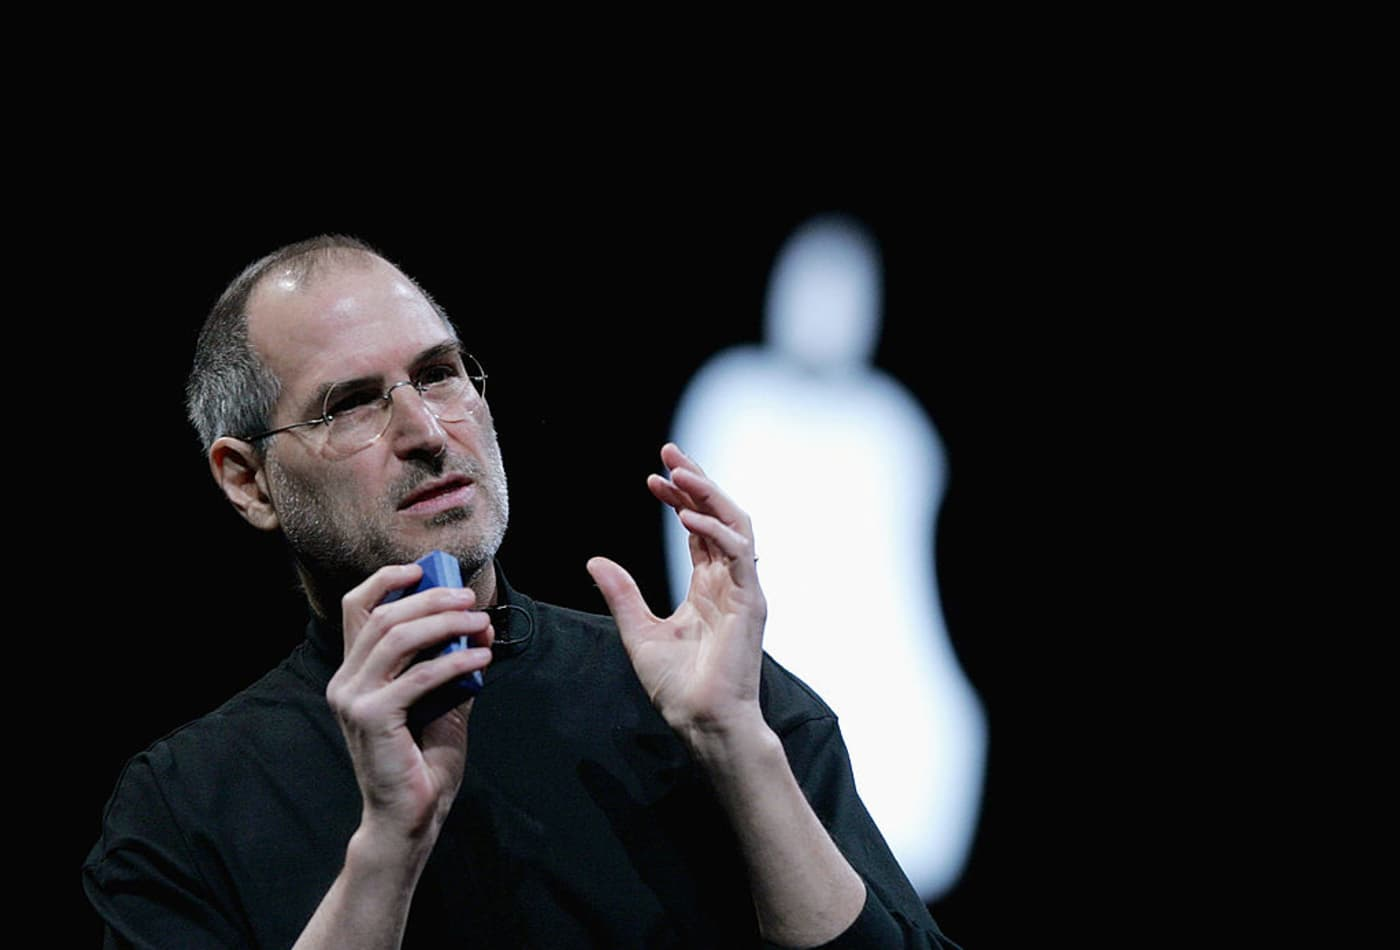 a1cf6d6c77e Nike's ads inspired Steve Jobs for Apple's 'Think Different' campaign 20  years ago — he called them 'the best example of all'